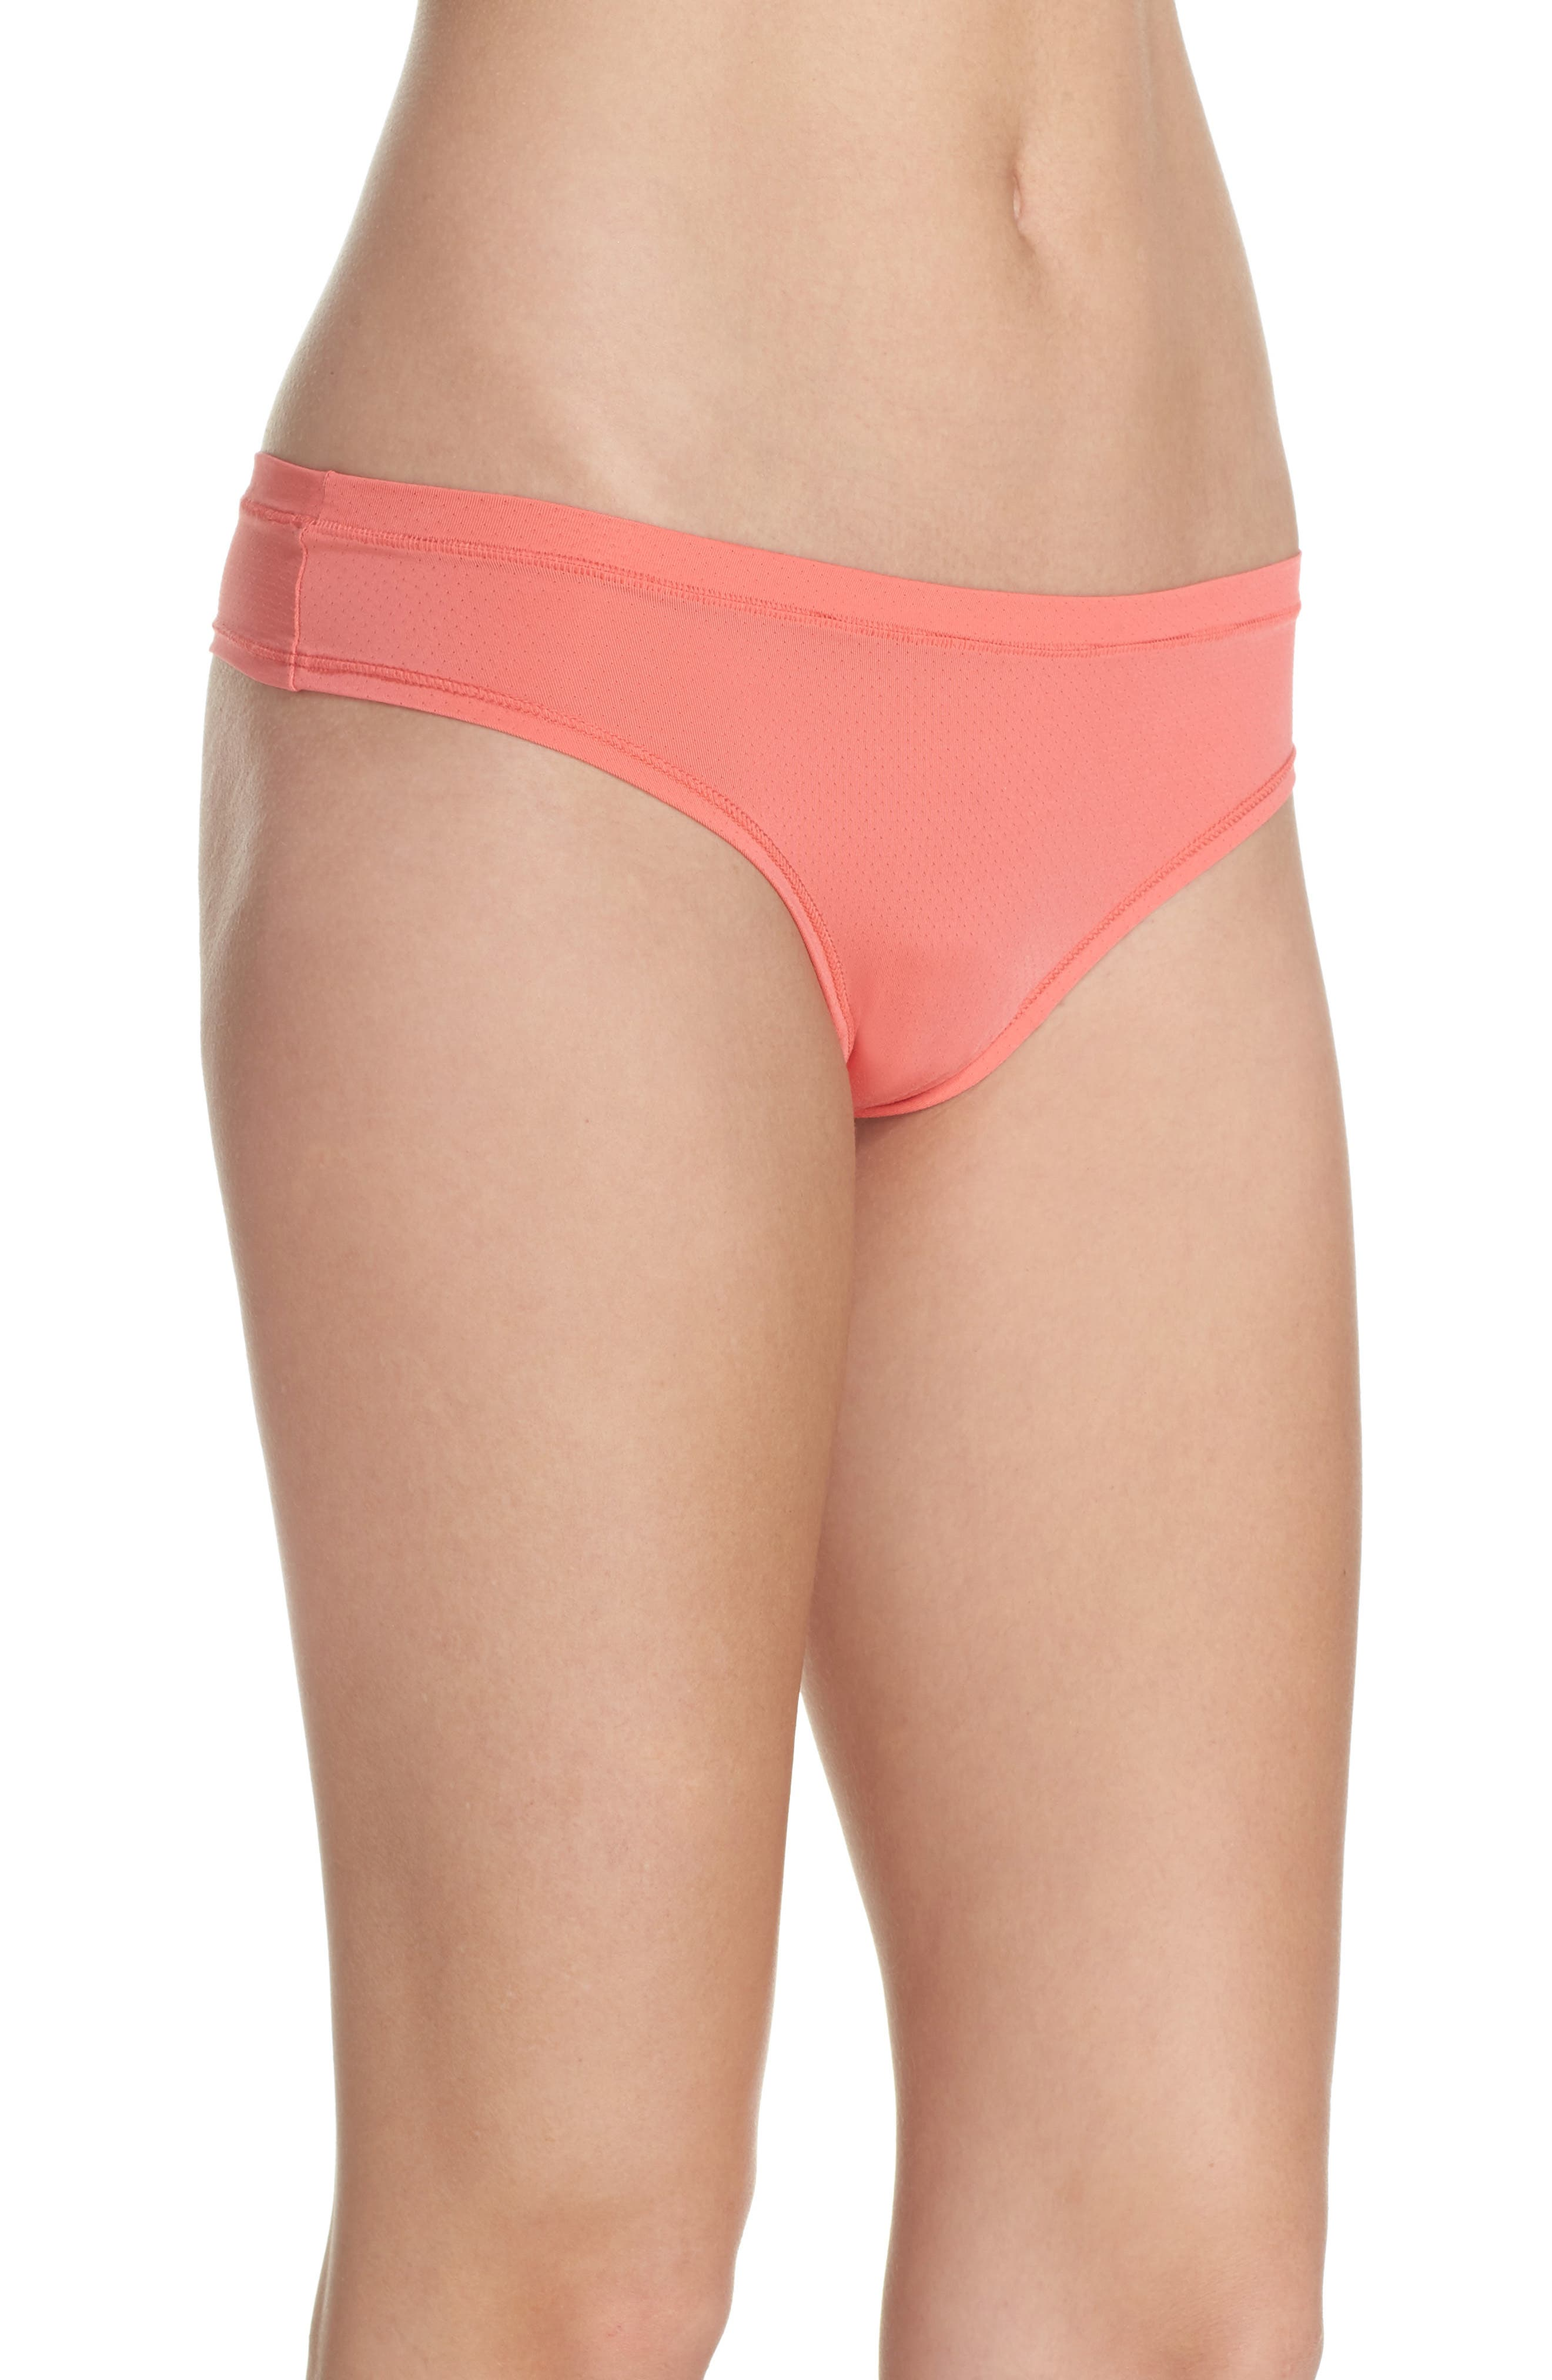 Alternate Image 3  - Zella Body Perforated Active Thong (3 for $33)